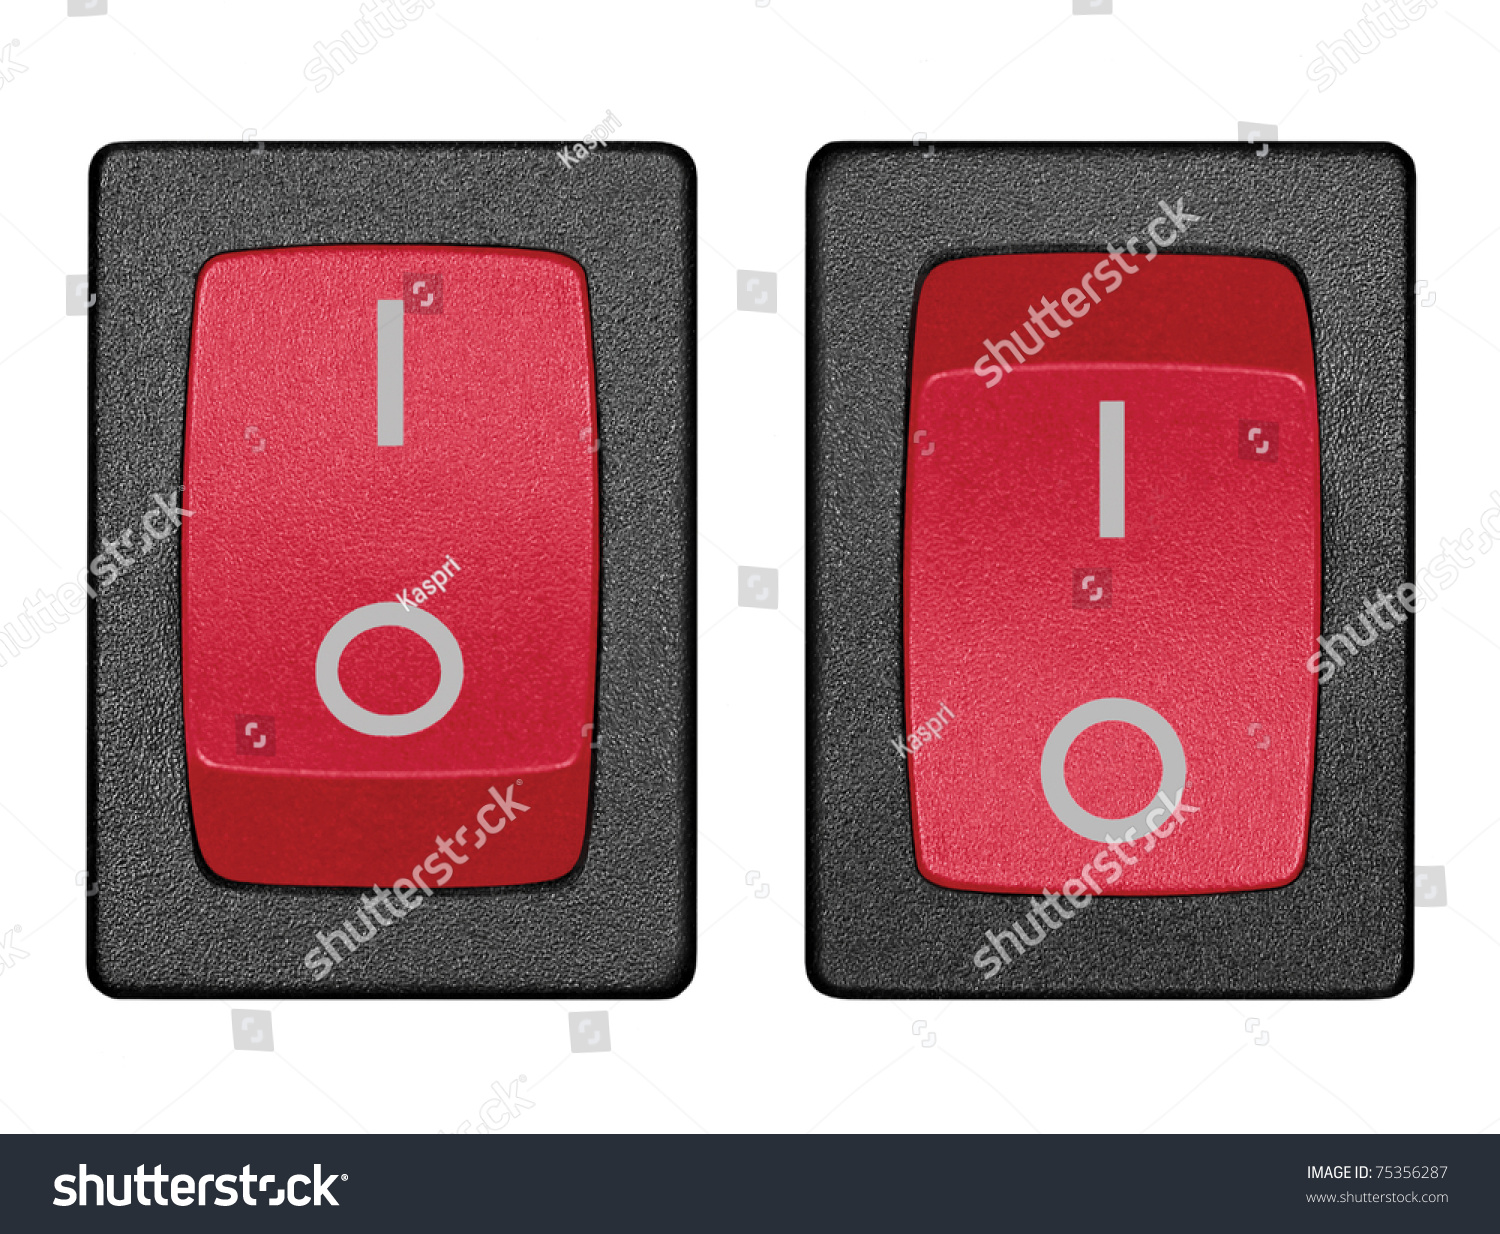 Charming symbols for off and on images electrical circuit comfortable switch symbols on off ideas electrical circuit biocorpaavc